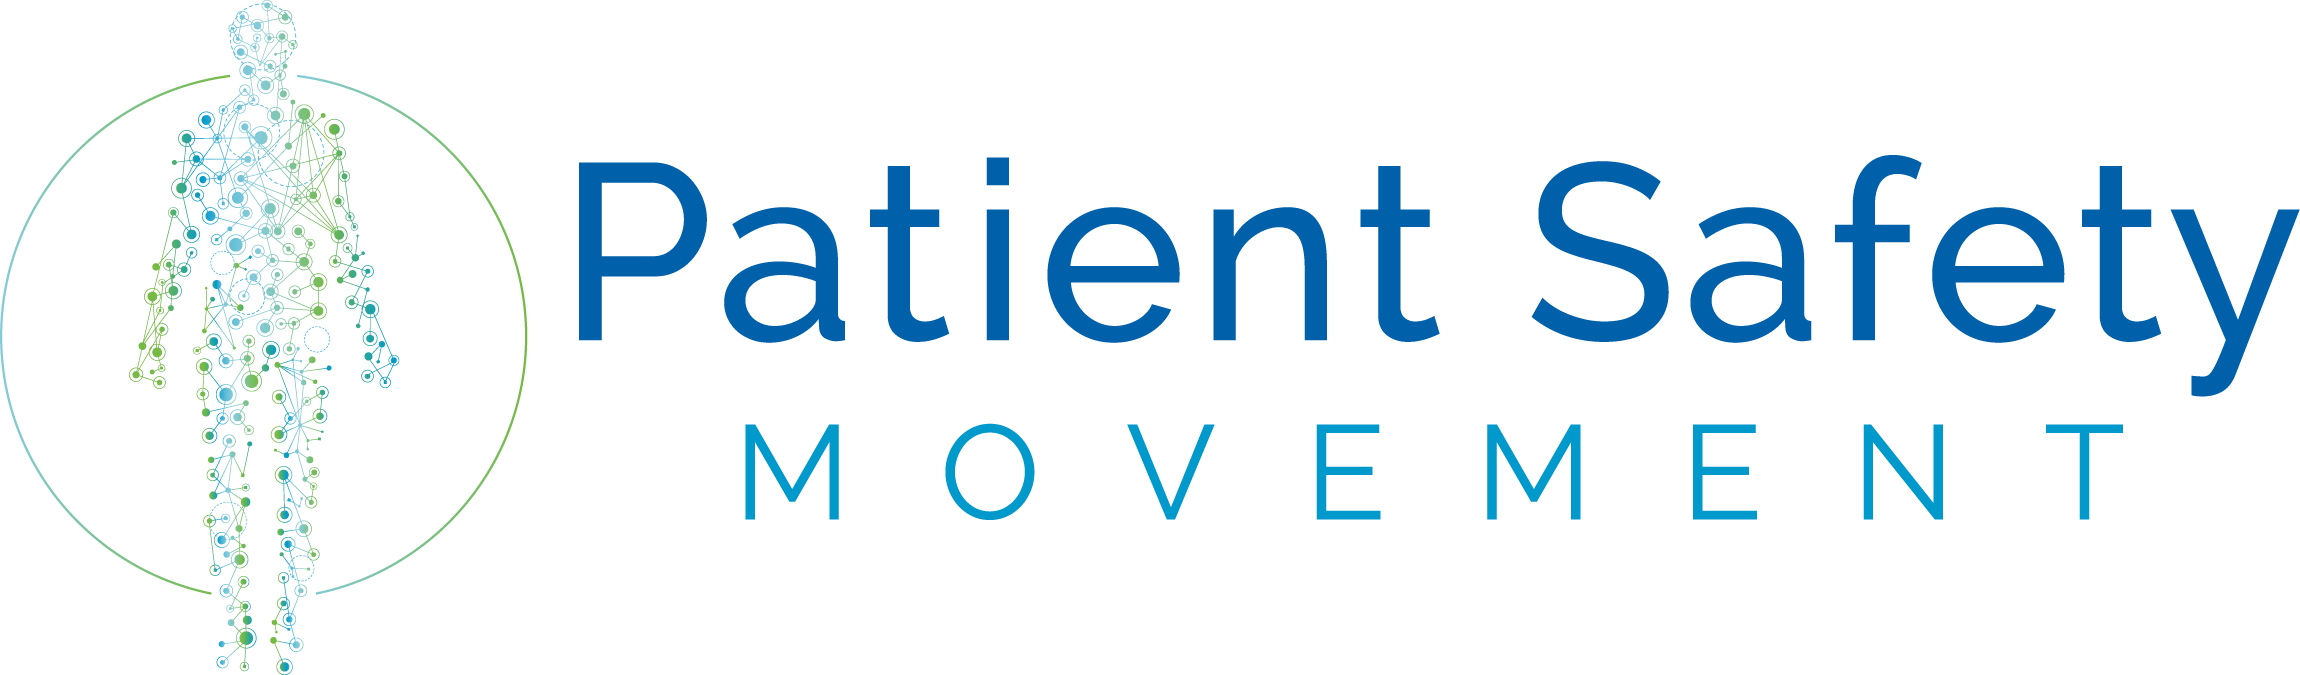 patient_safety_movement